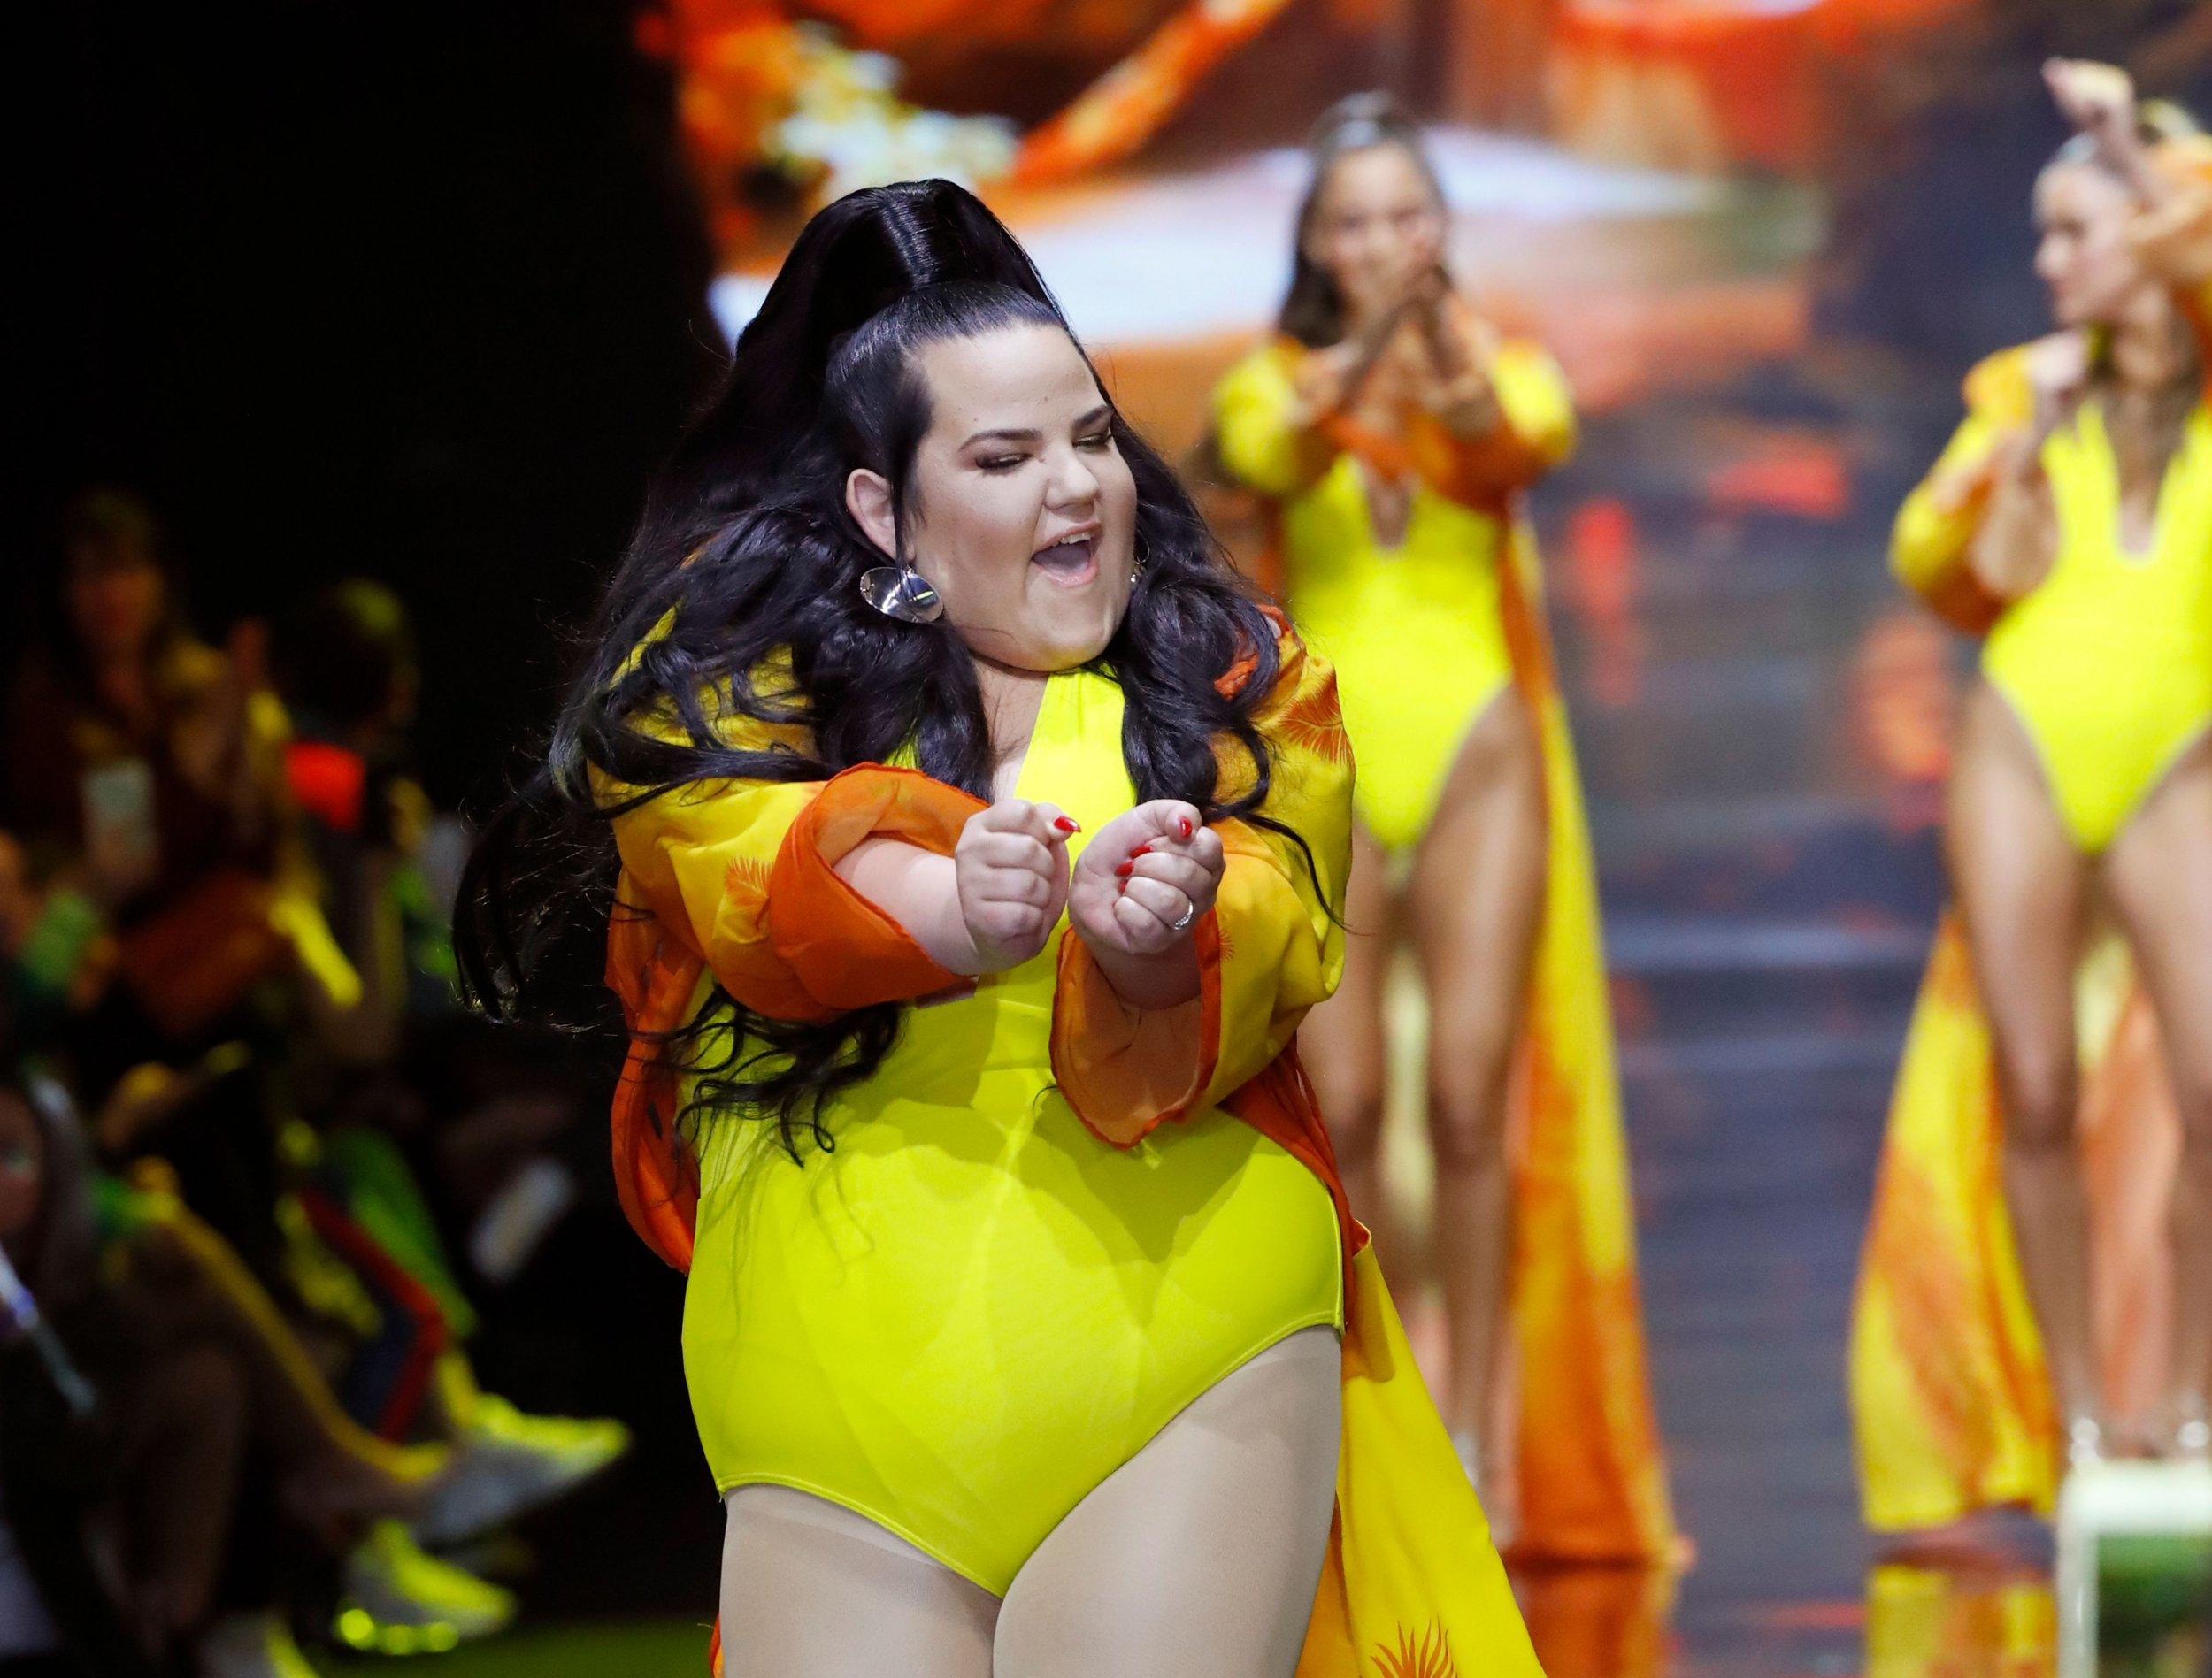 Israeli 2018 Eurovision Song Contest winner Netta Barzilai (C) presents a creation by Israeli designer Bananhot during the Tel Aviv Fashion Week, on March 12, 2019 in the coastal city of Tel Aviv. (Photo by JACK GUEZ / AFP)JACK GUEZ/AFP/Getty Images